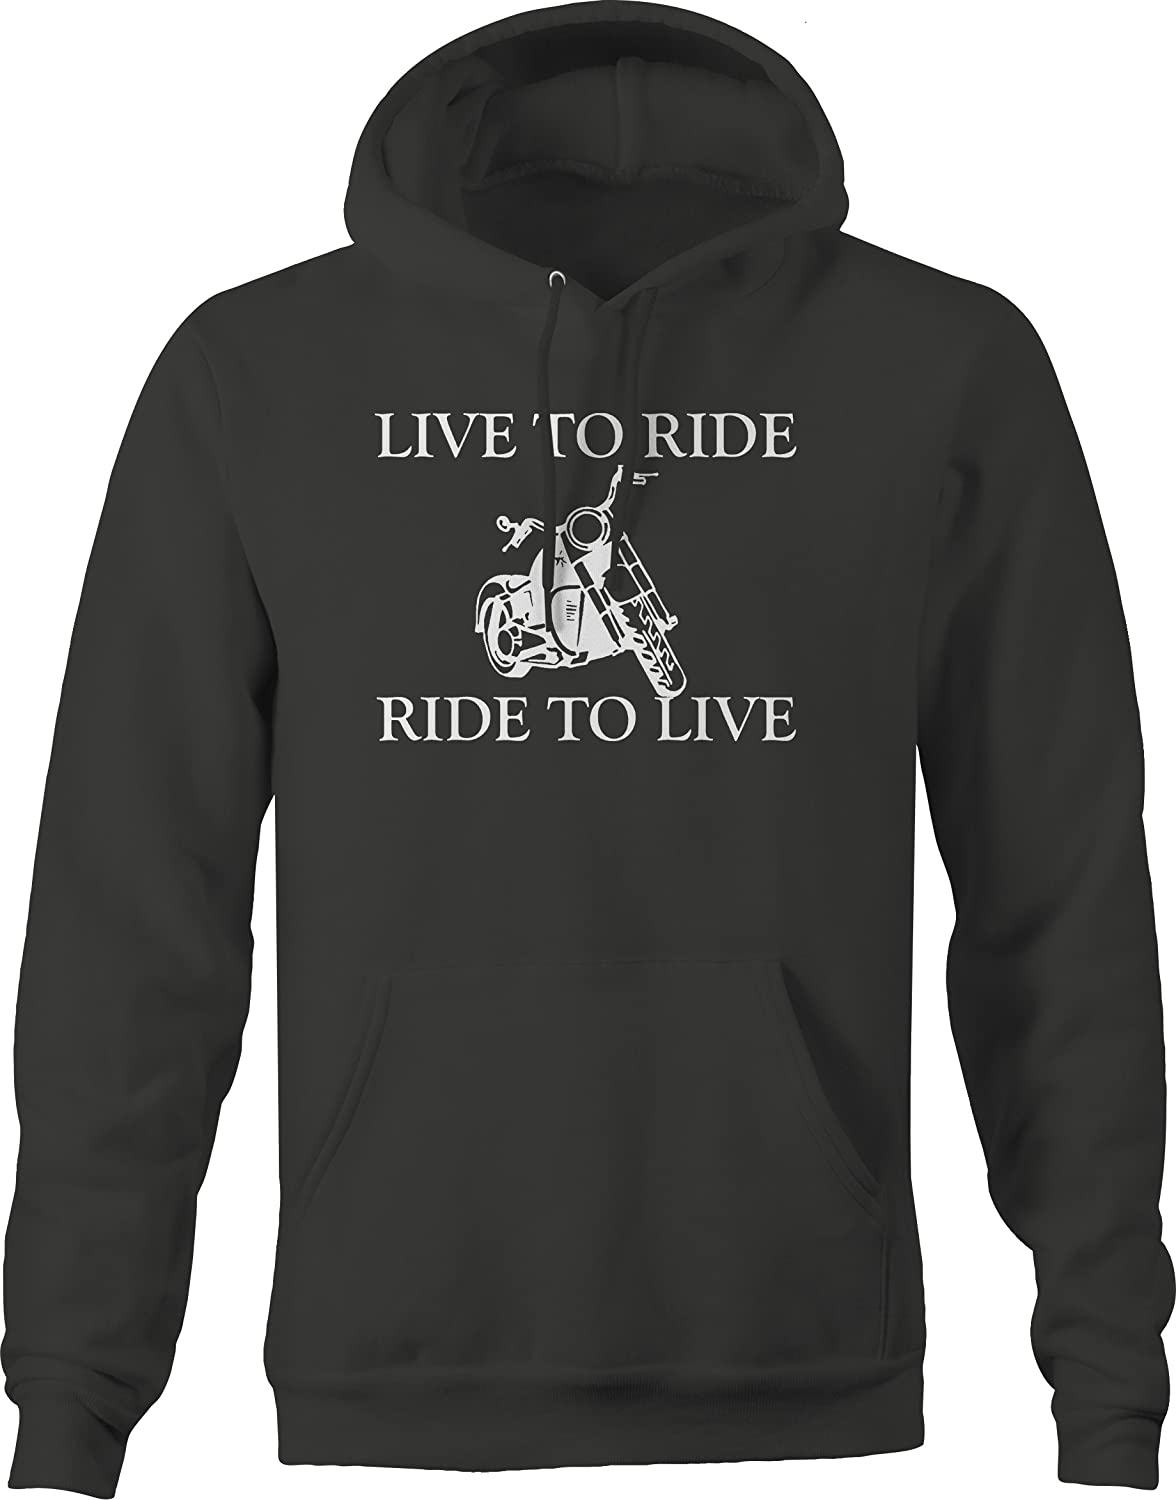 Motorcycle Live to Ride Ride to Live Hooded Fleece Graphic Hoodie for Men